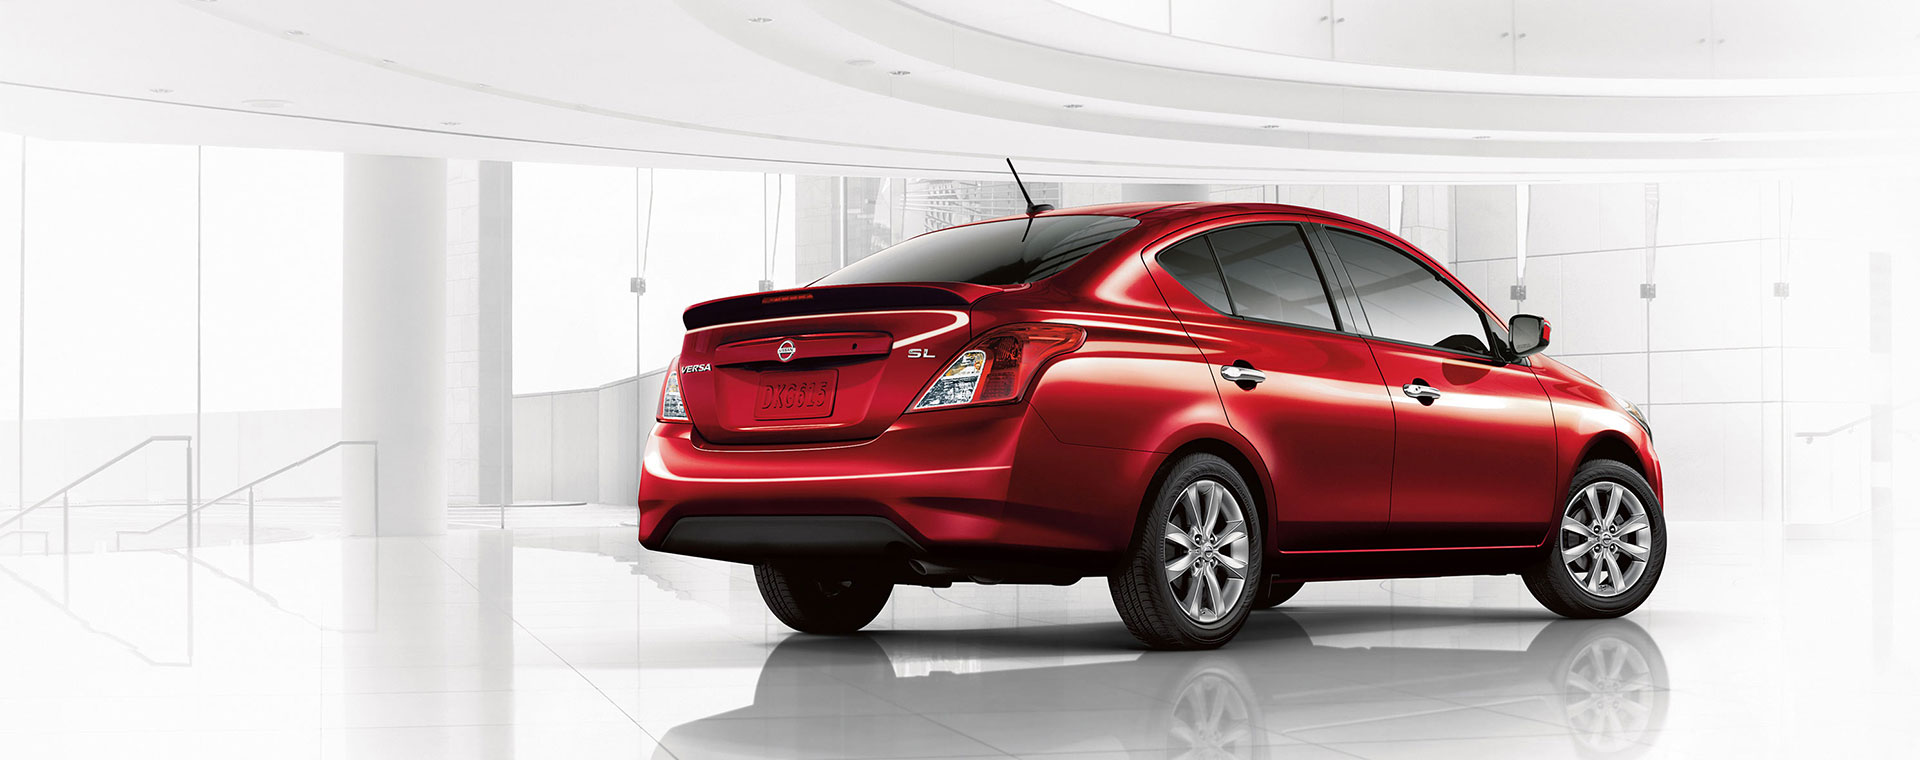 New Versa inventory at Quirk Nissan